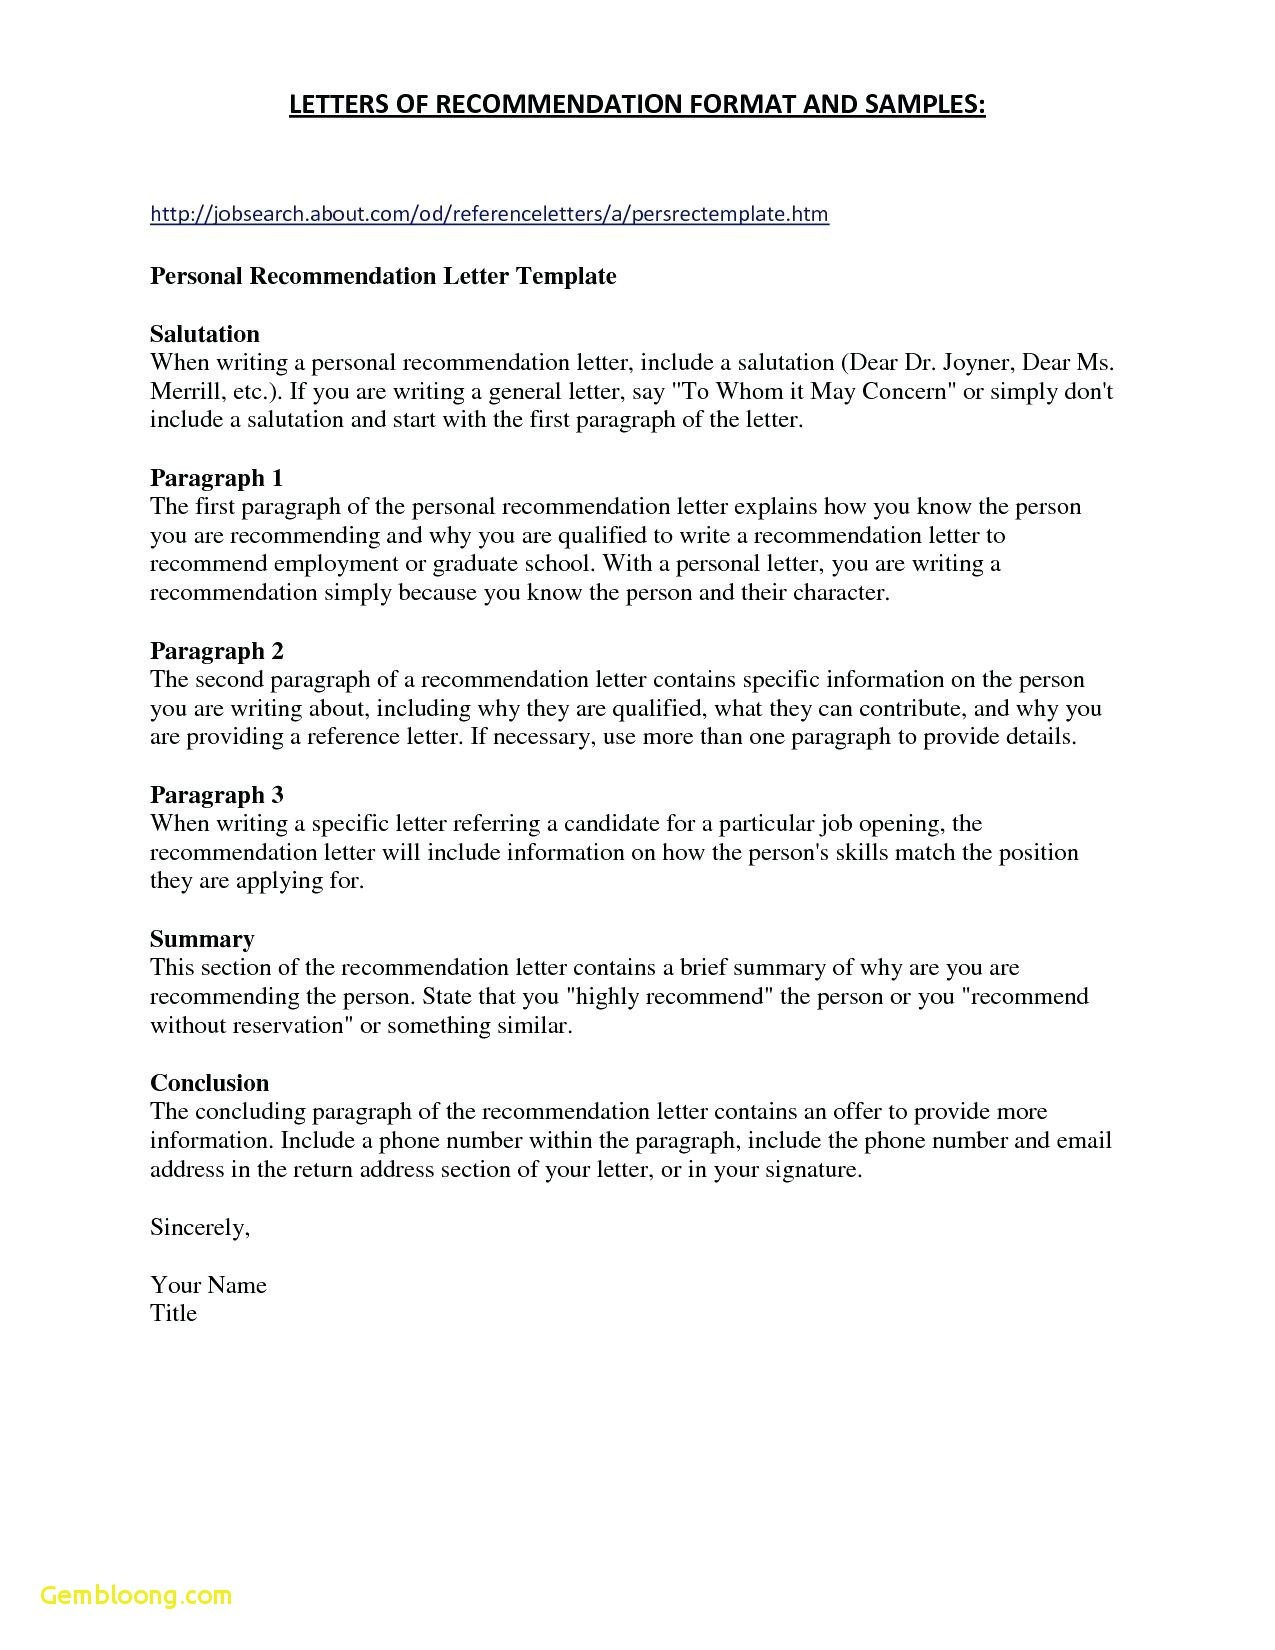 good character reference letter template example-Job Re mendation Letter Template Best Refrence format Job Reference Letter 16-j